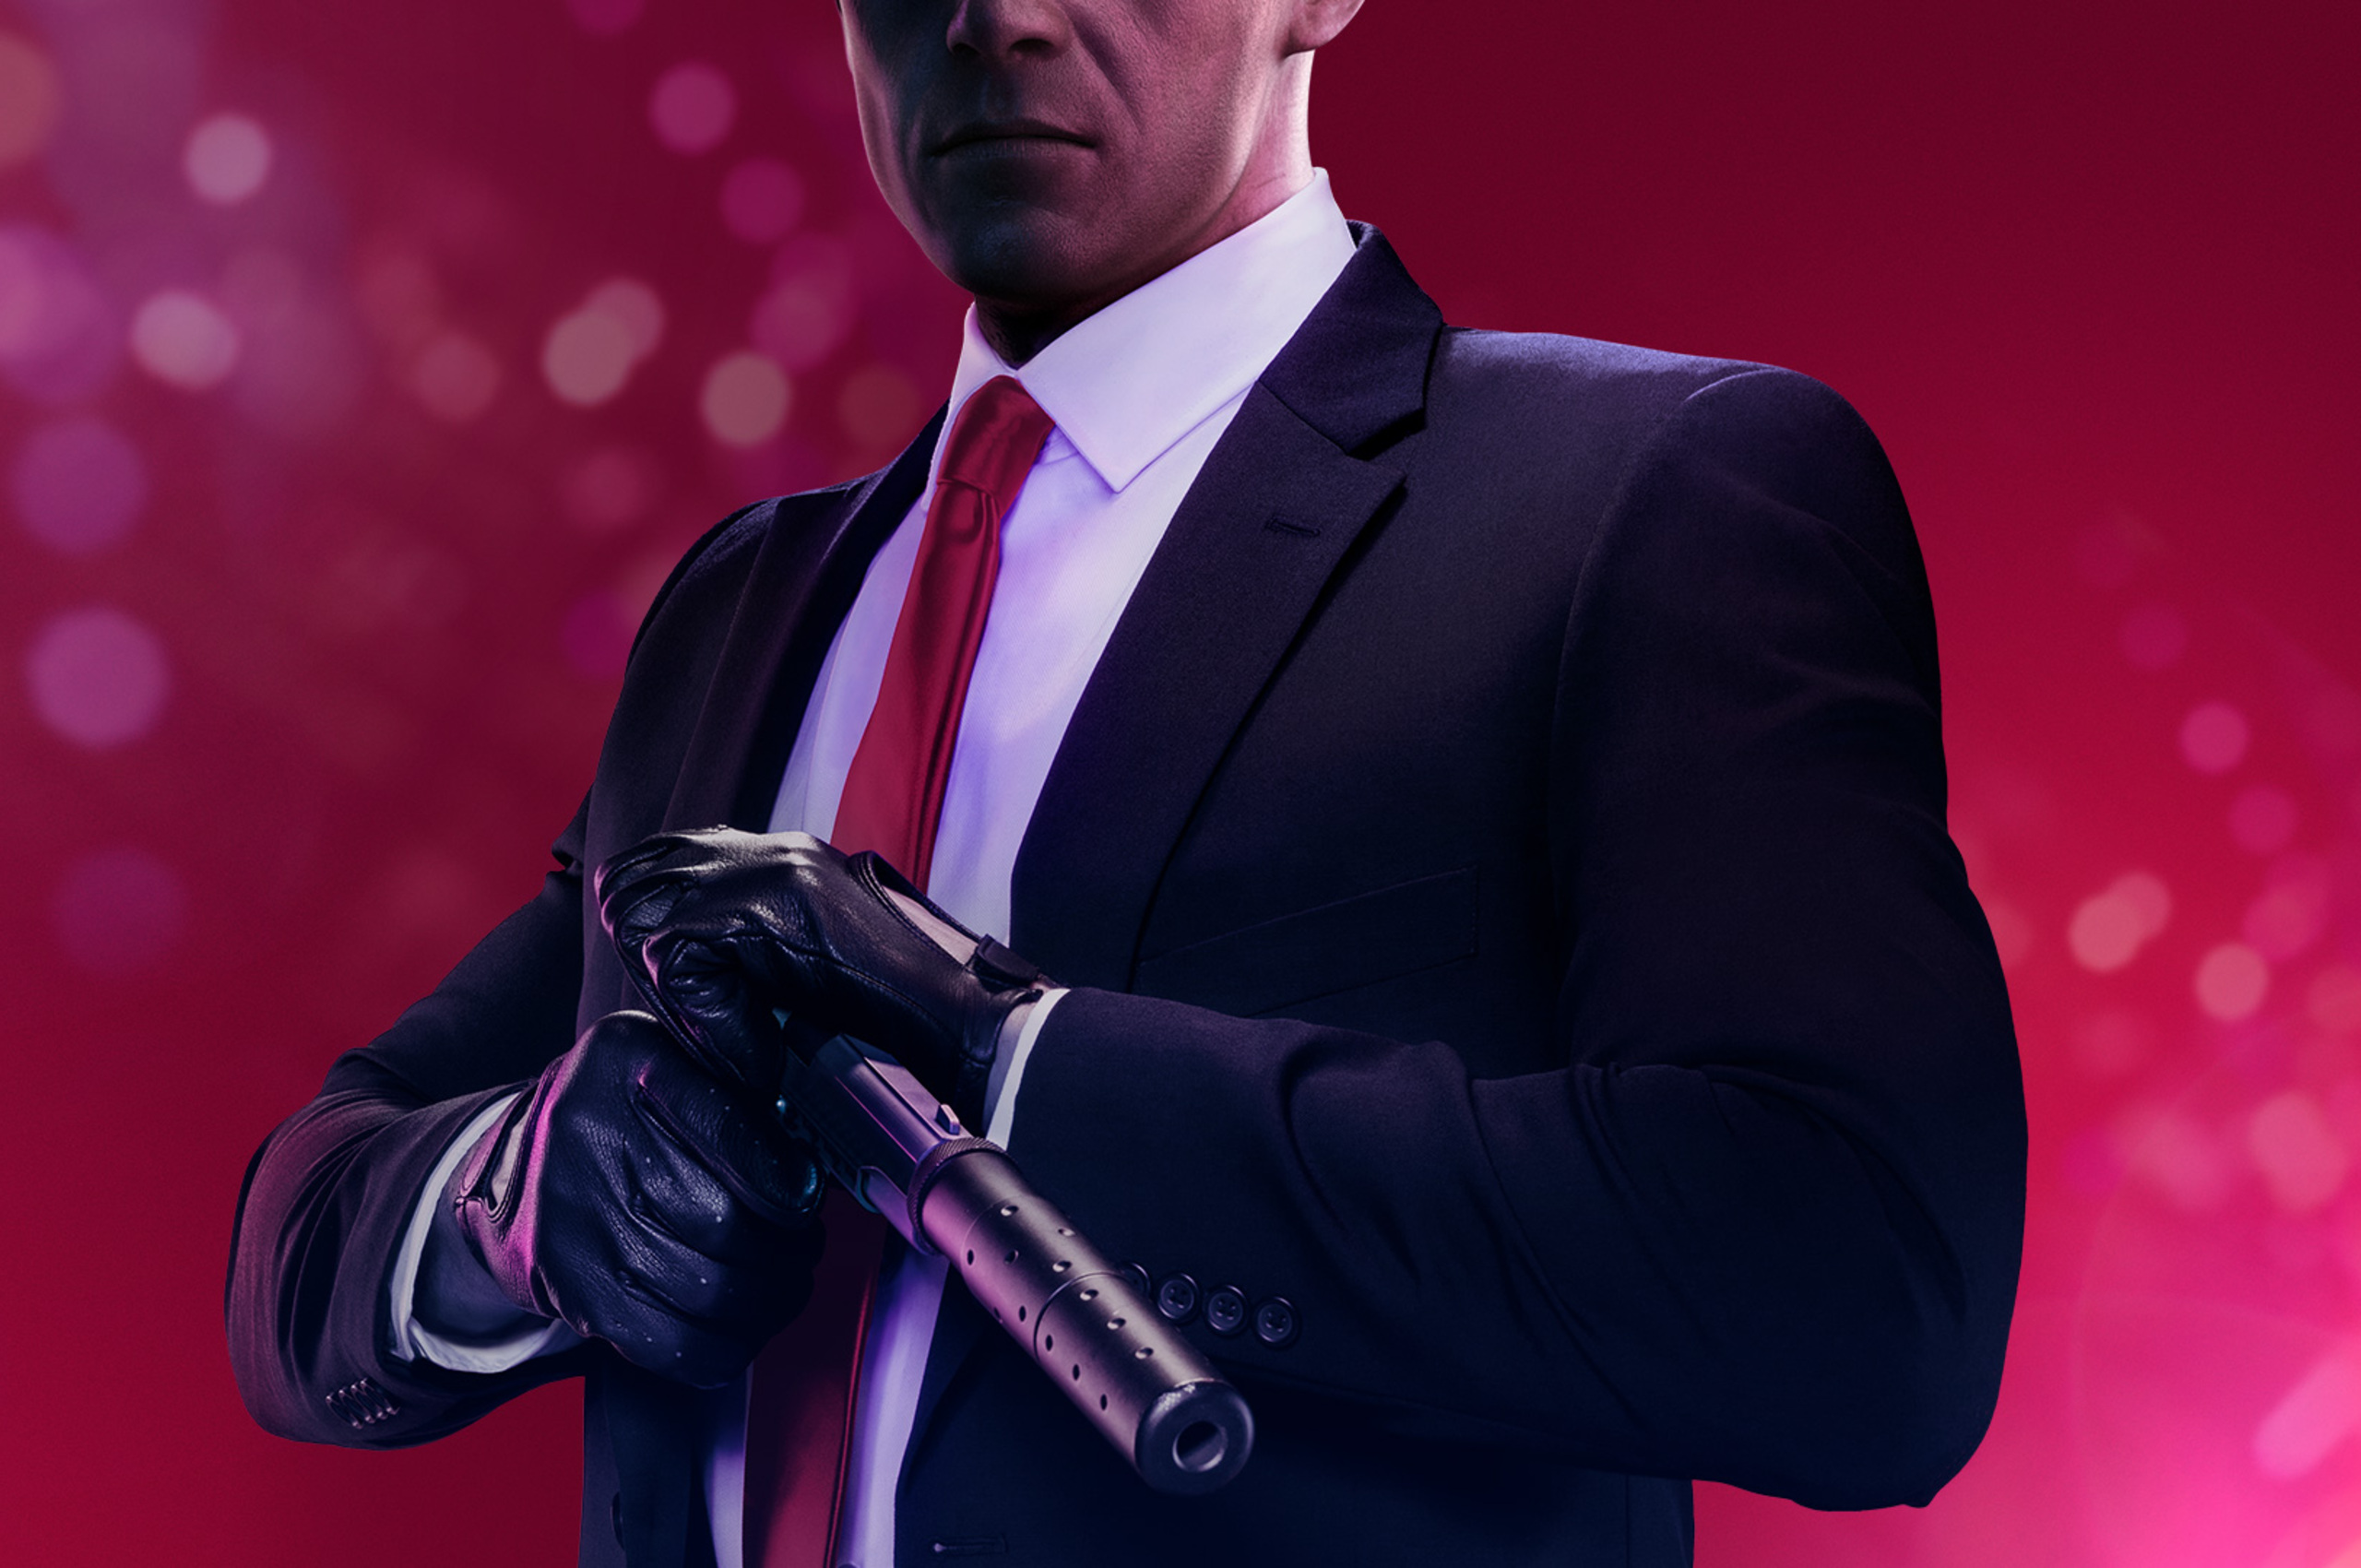 2560x1700 Agent 47 Hitman 2 Game Chromebook Pixel Hd 4k